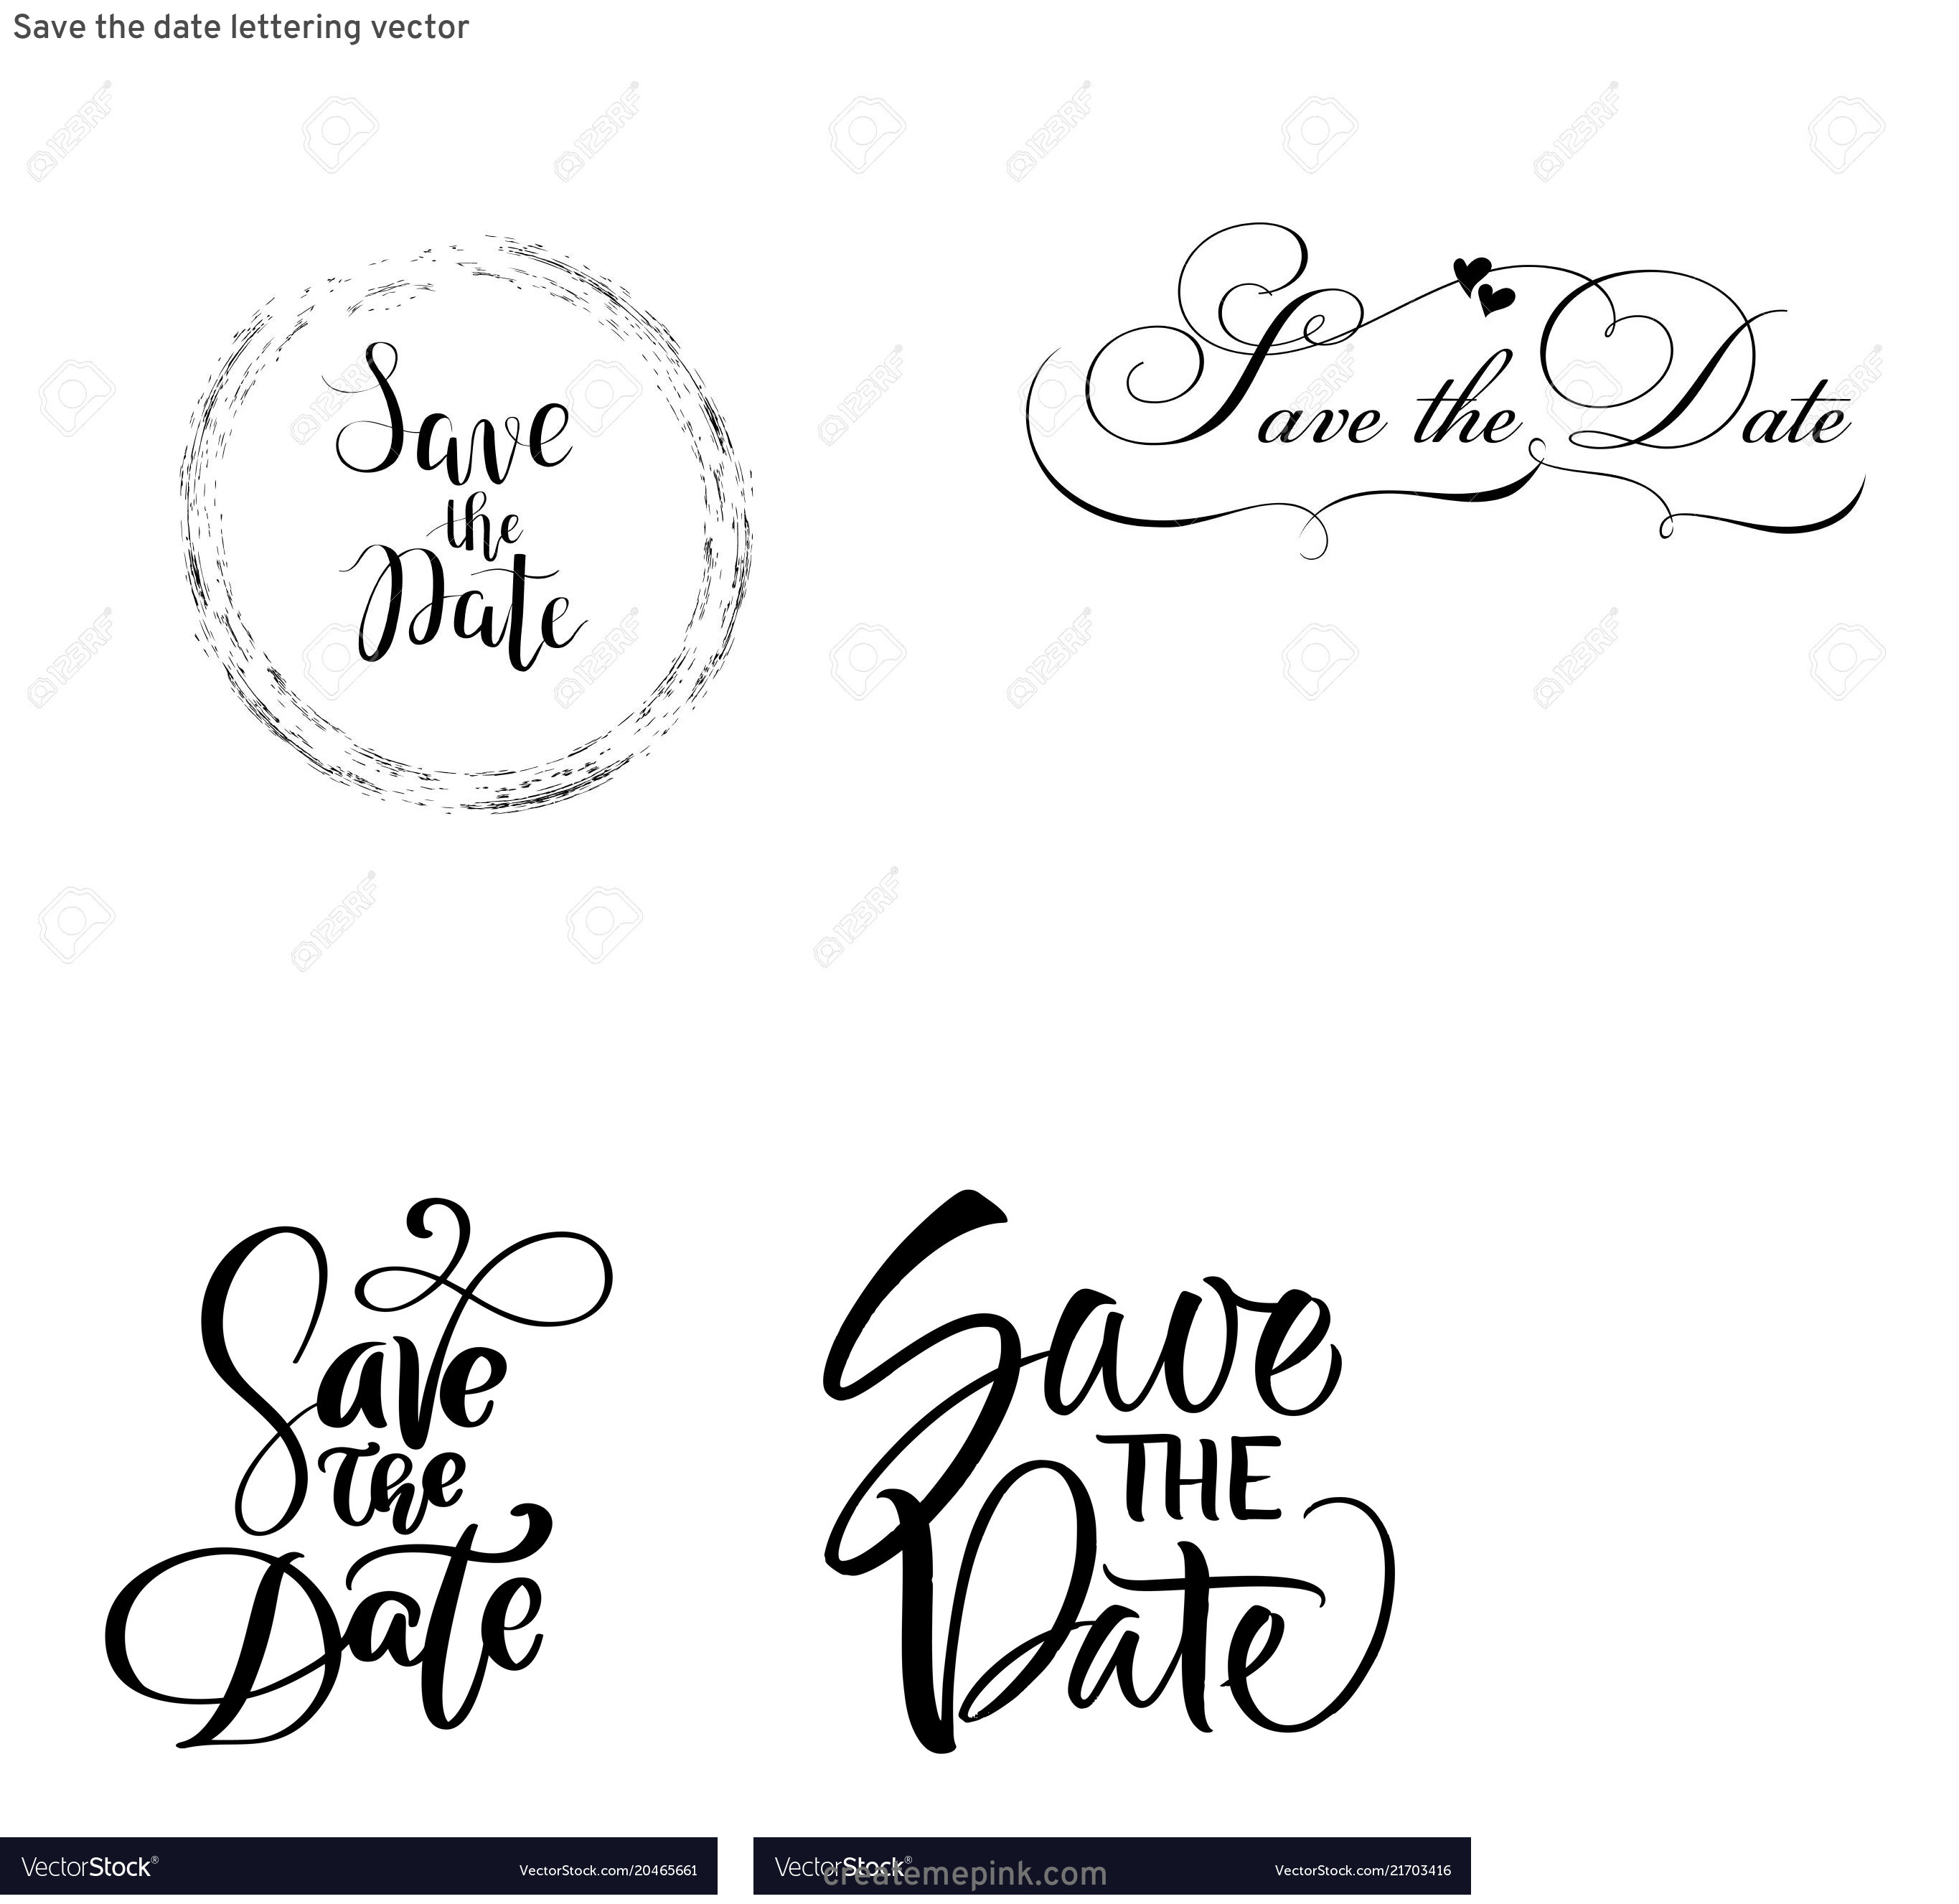 Save The Date Vector: Save The Date Lettering Vector